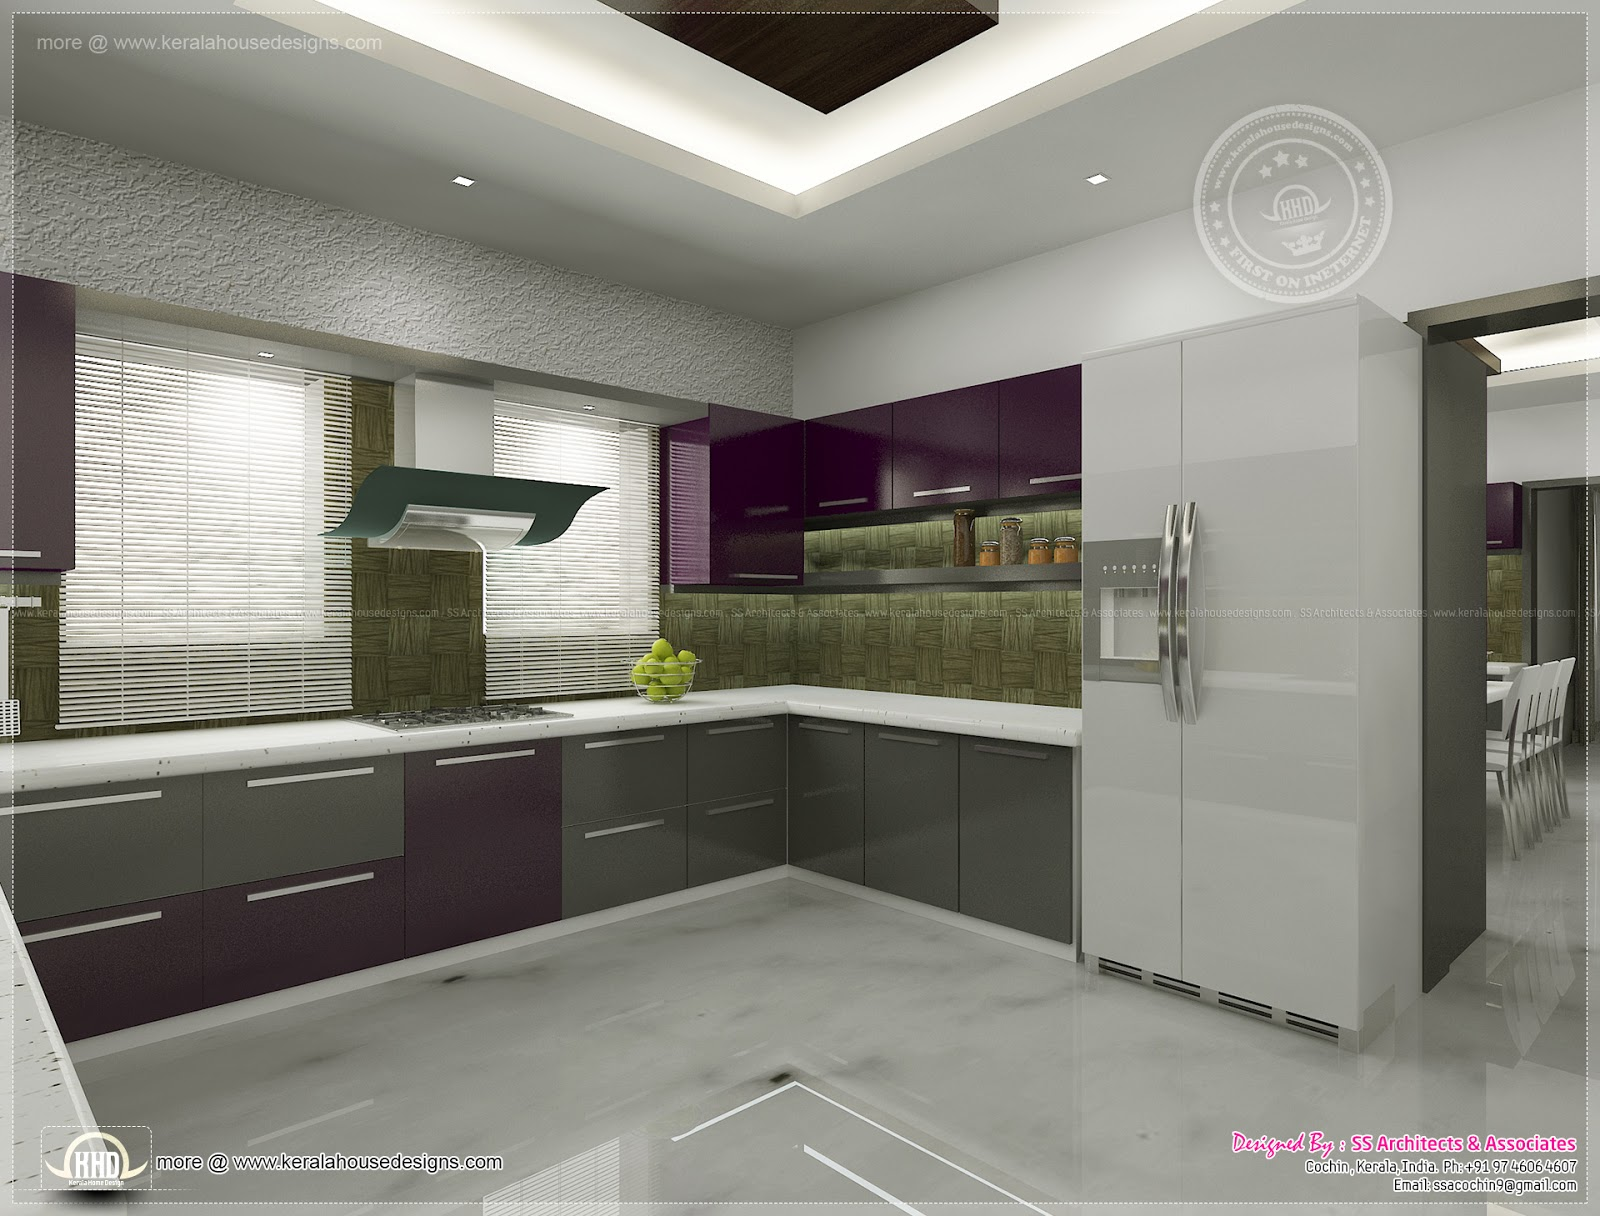 Kitchen interior views by ss architects cochin kerala House model interior design